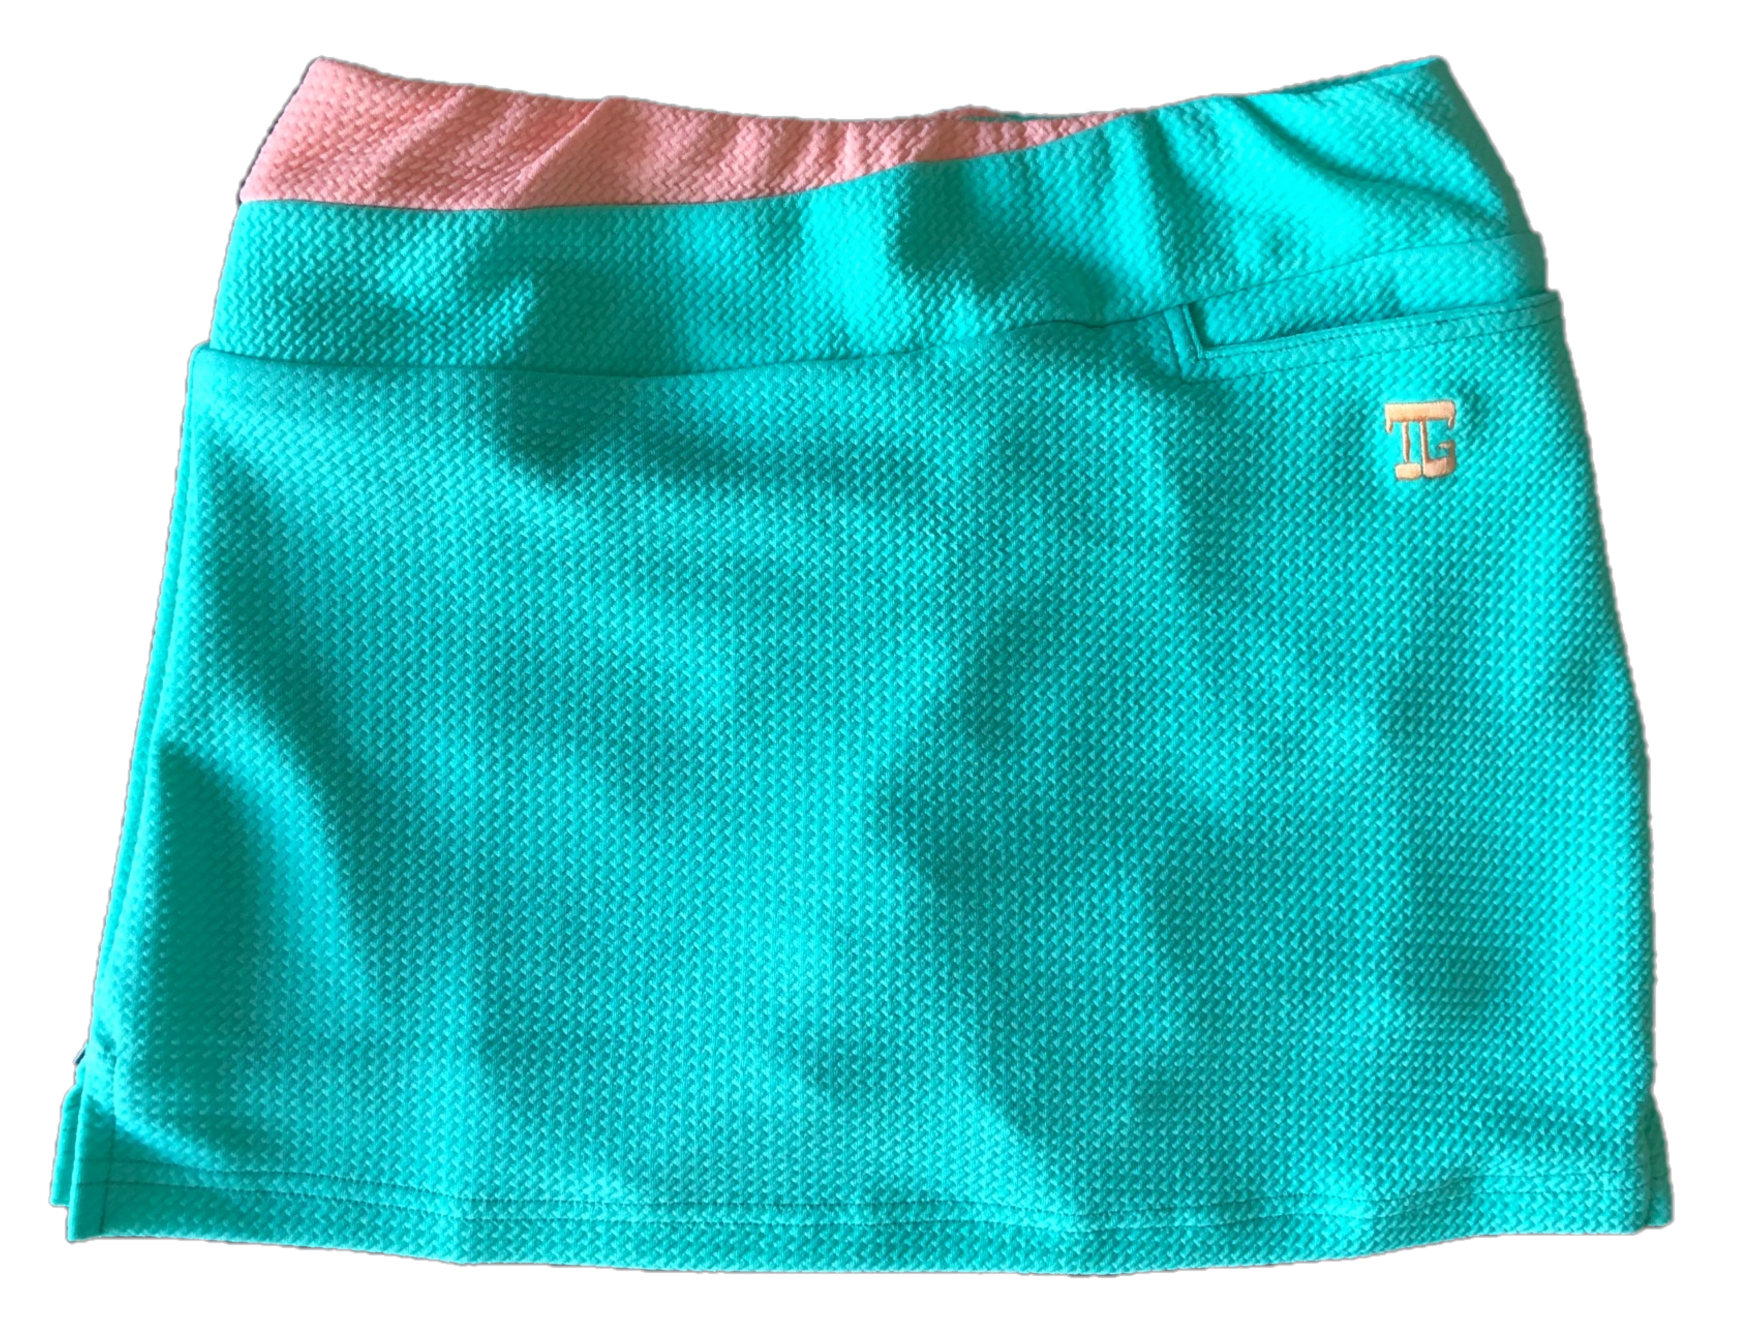 LS-062A    Ladies Skirt Mid Green Bubble Seersucker  Texture Pale Orange Waist Flash With One Front And 2 Rear Pockets